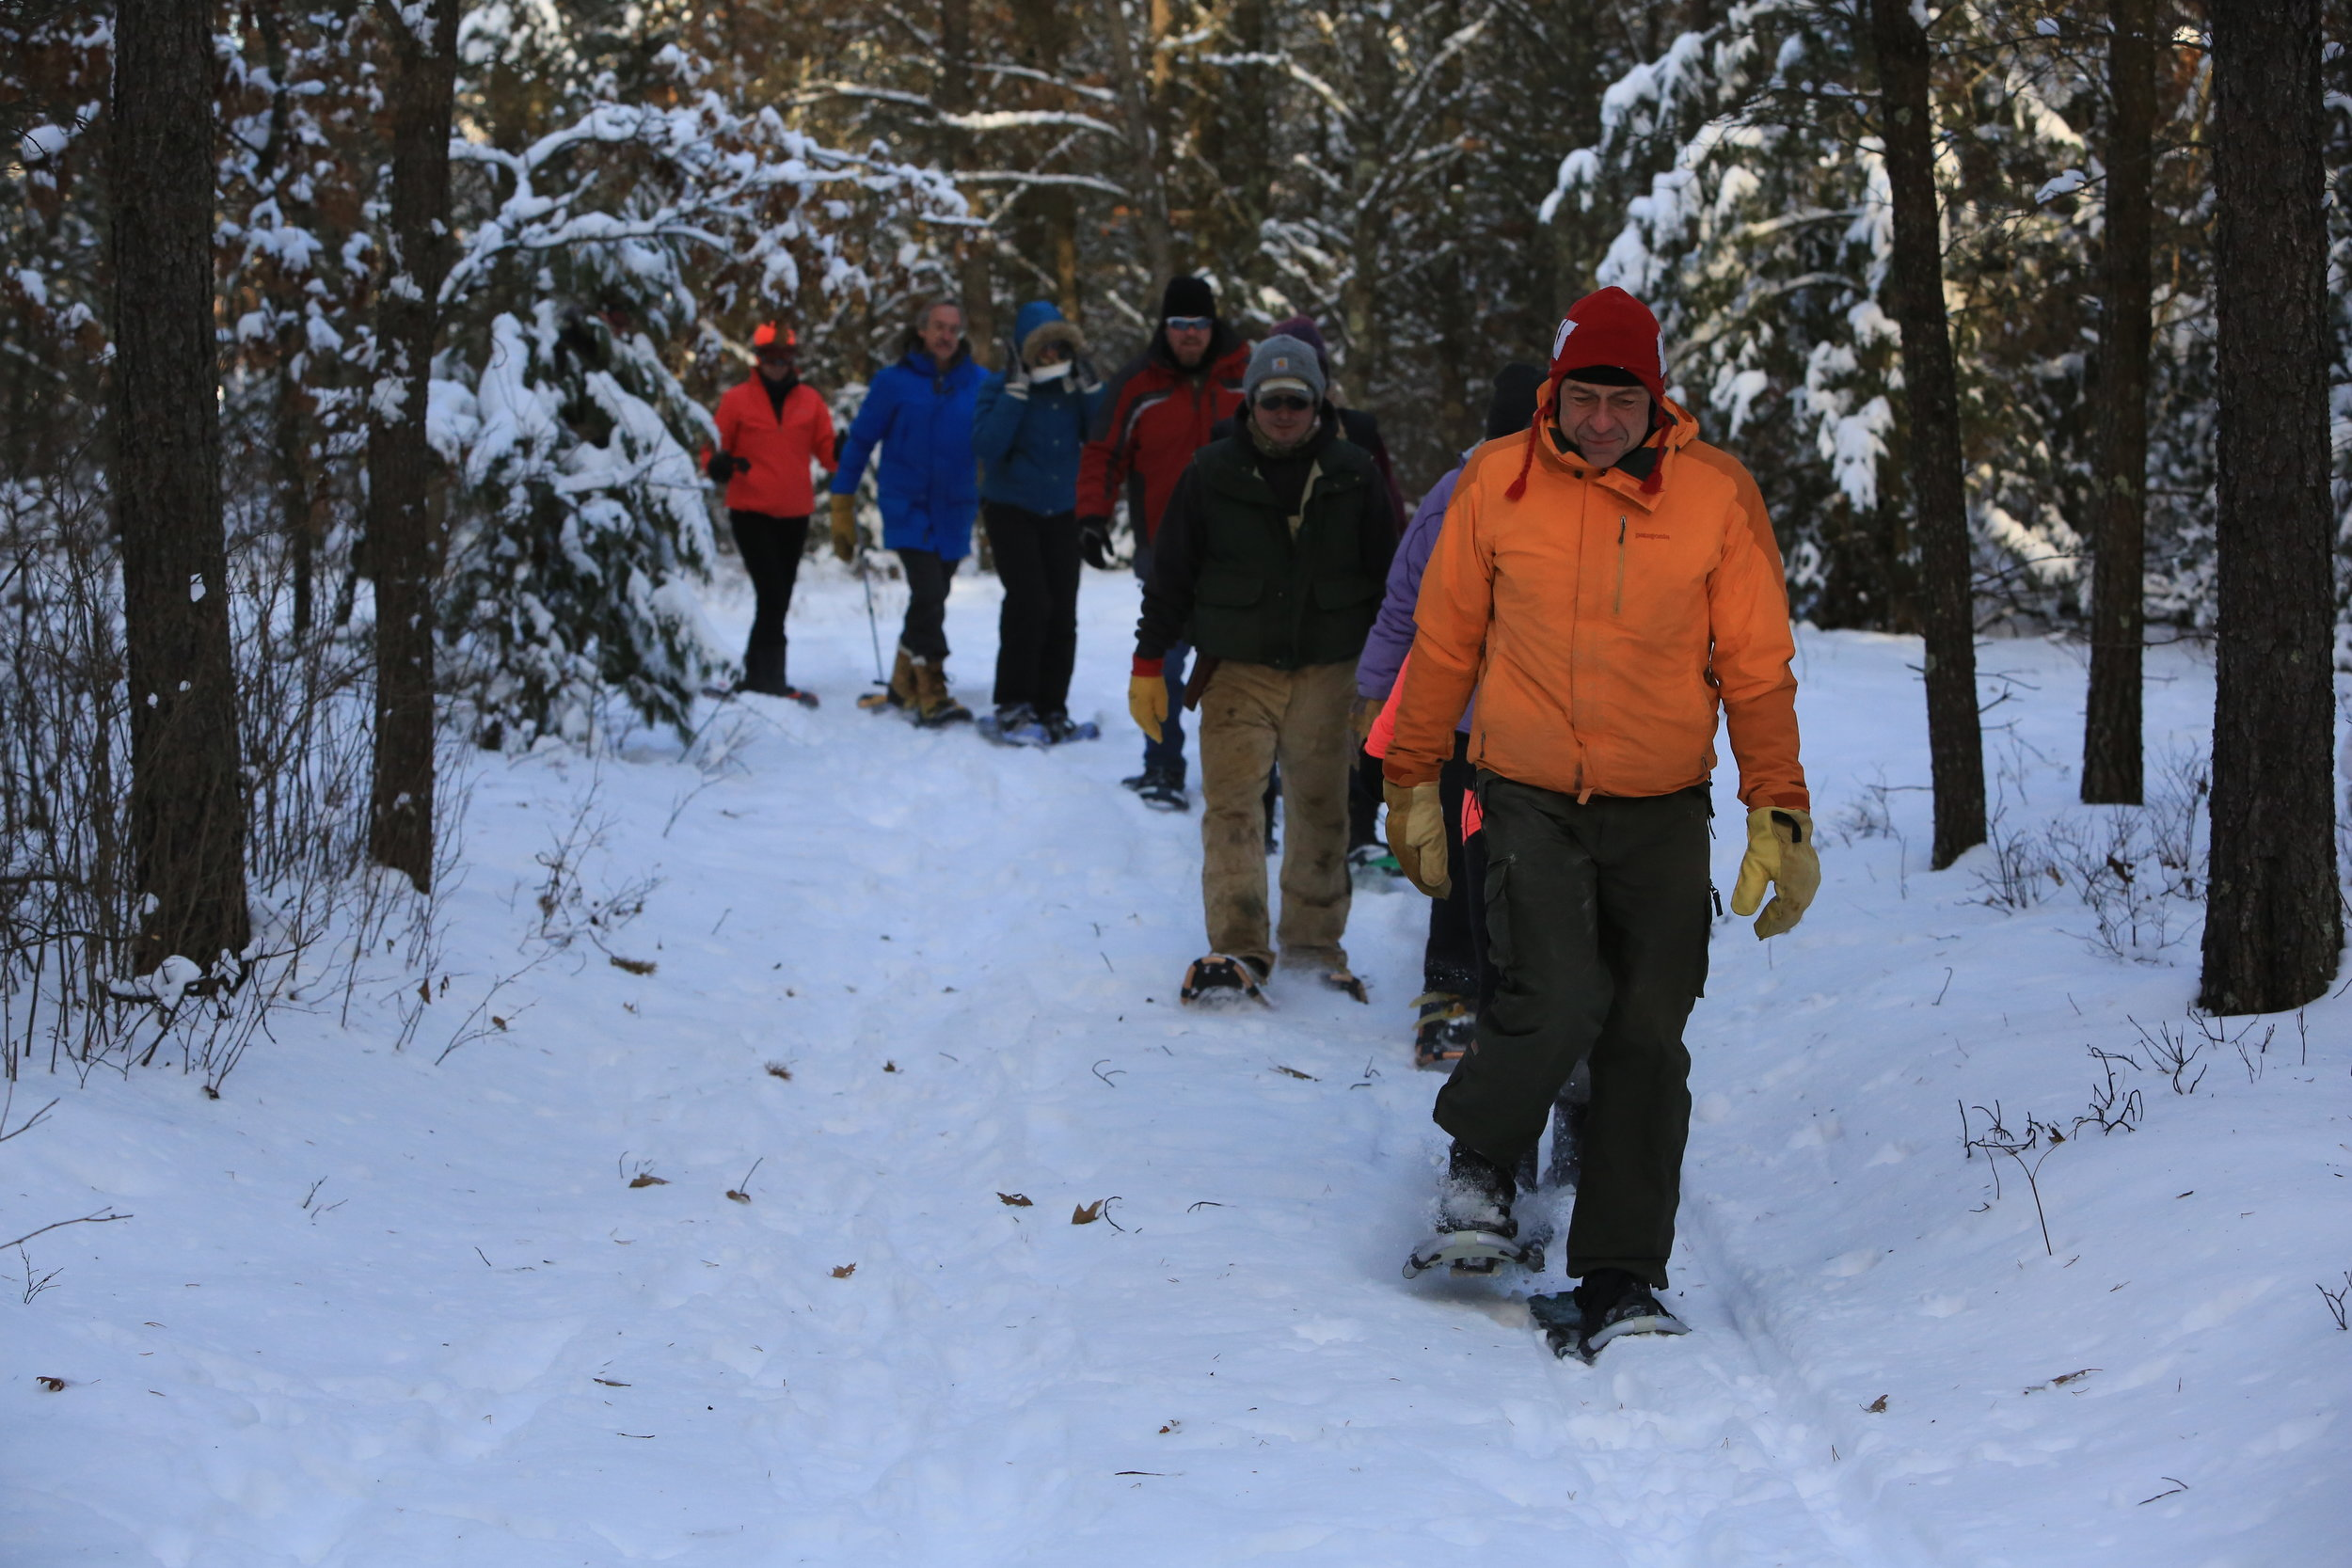 Snowshoeing at Wazee Lake Recreation Area as part of the Jackson in Action Family Snowshoe Event.